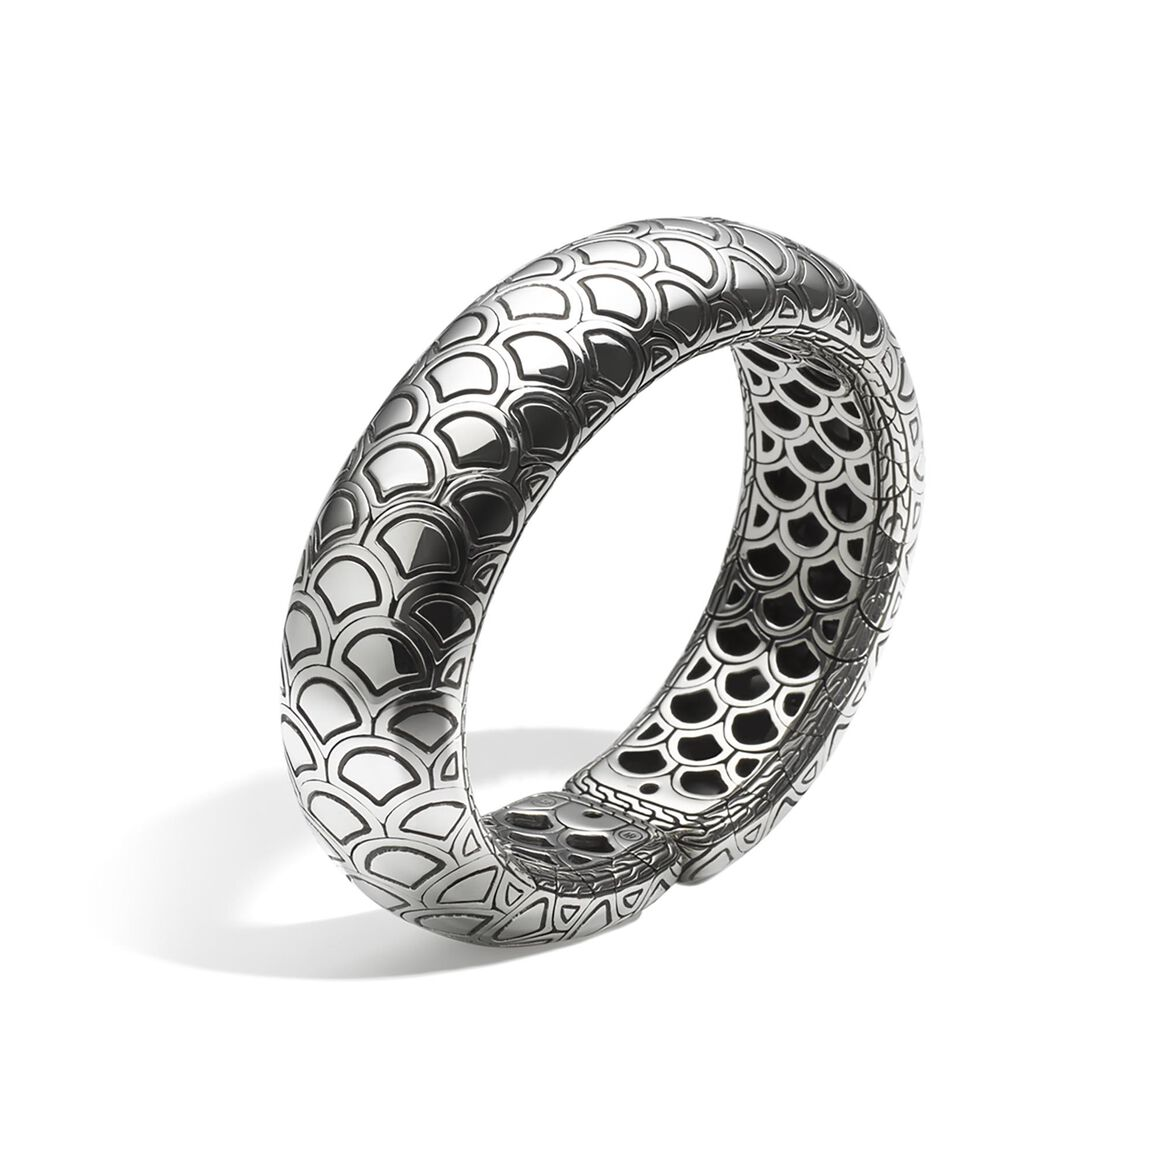 Legends Naga 20.5MM Cuff in Silver